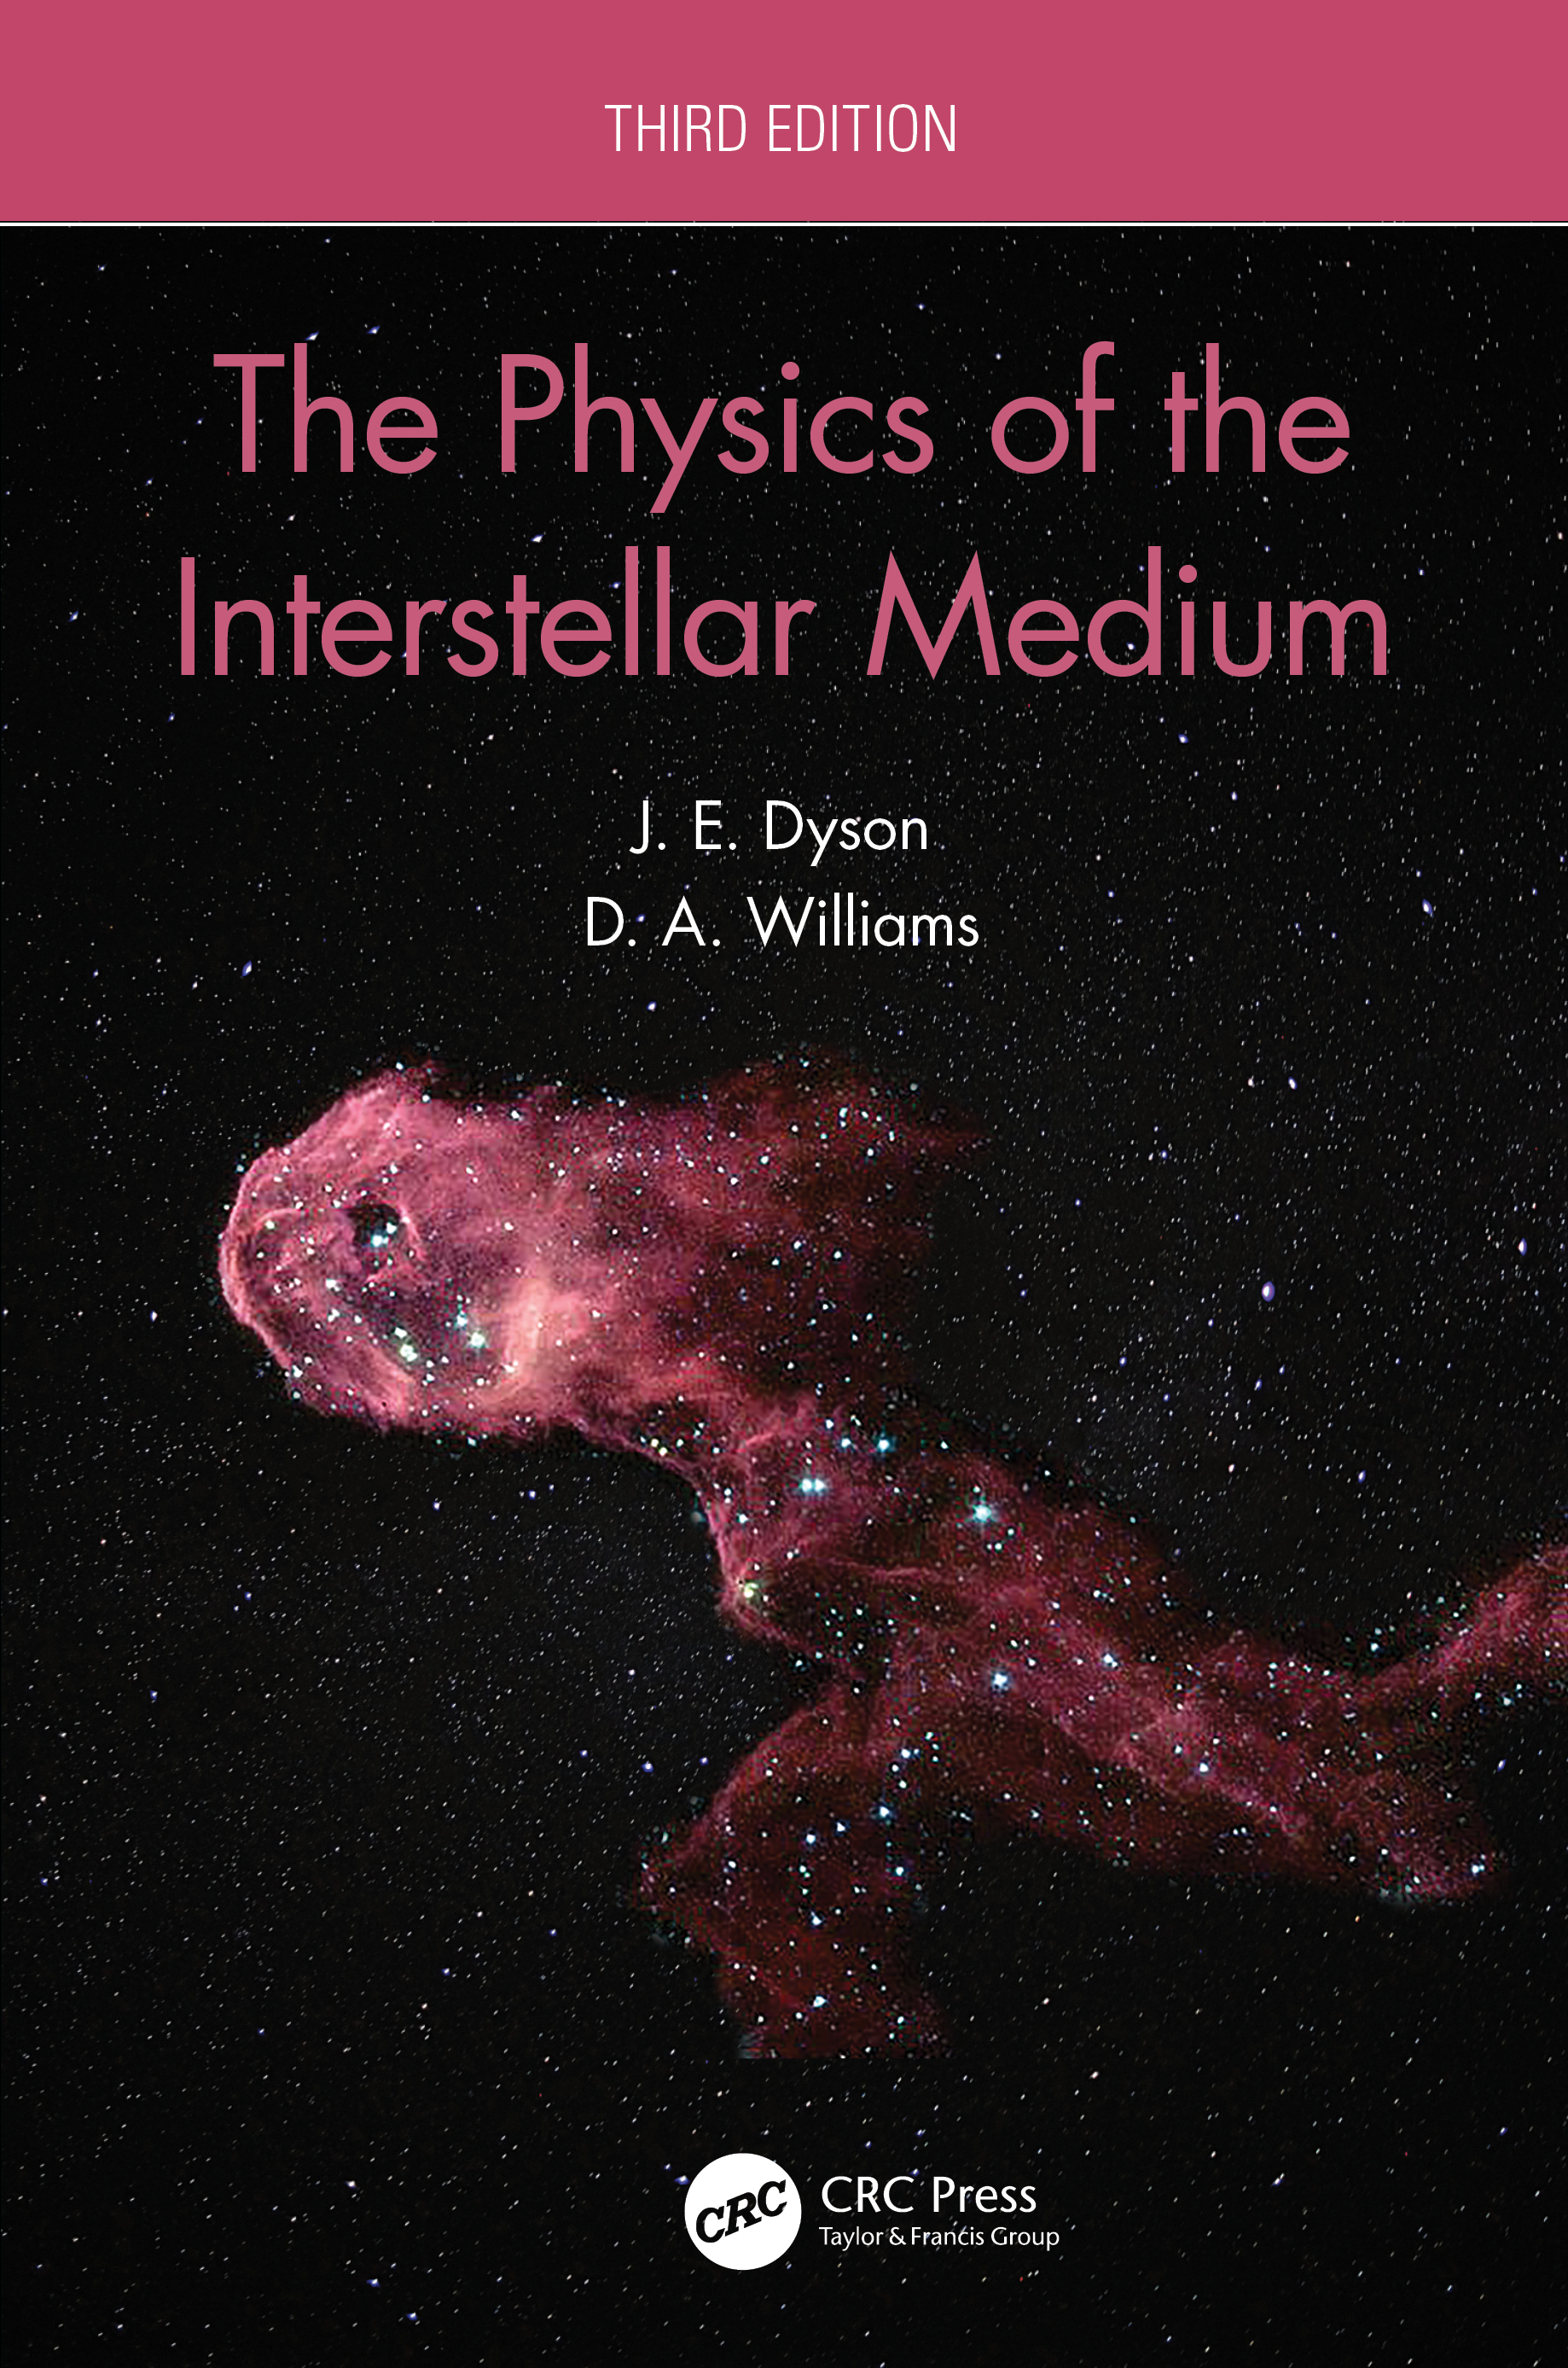 The Physics of the Interstellar Medium book cover